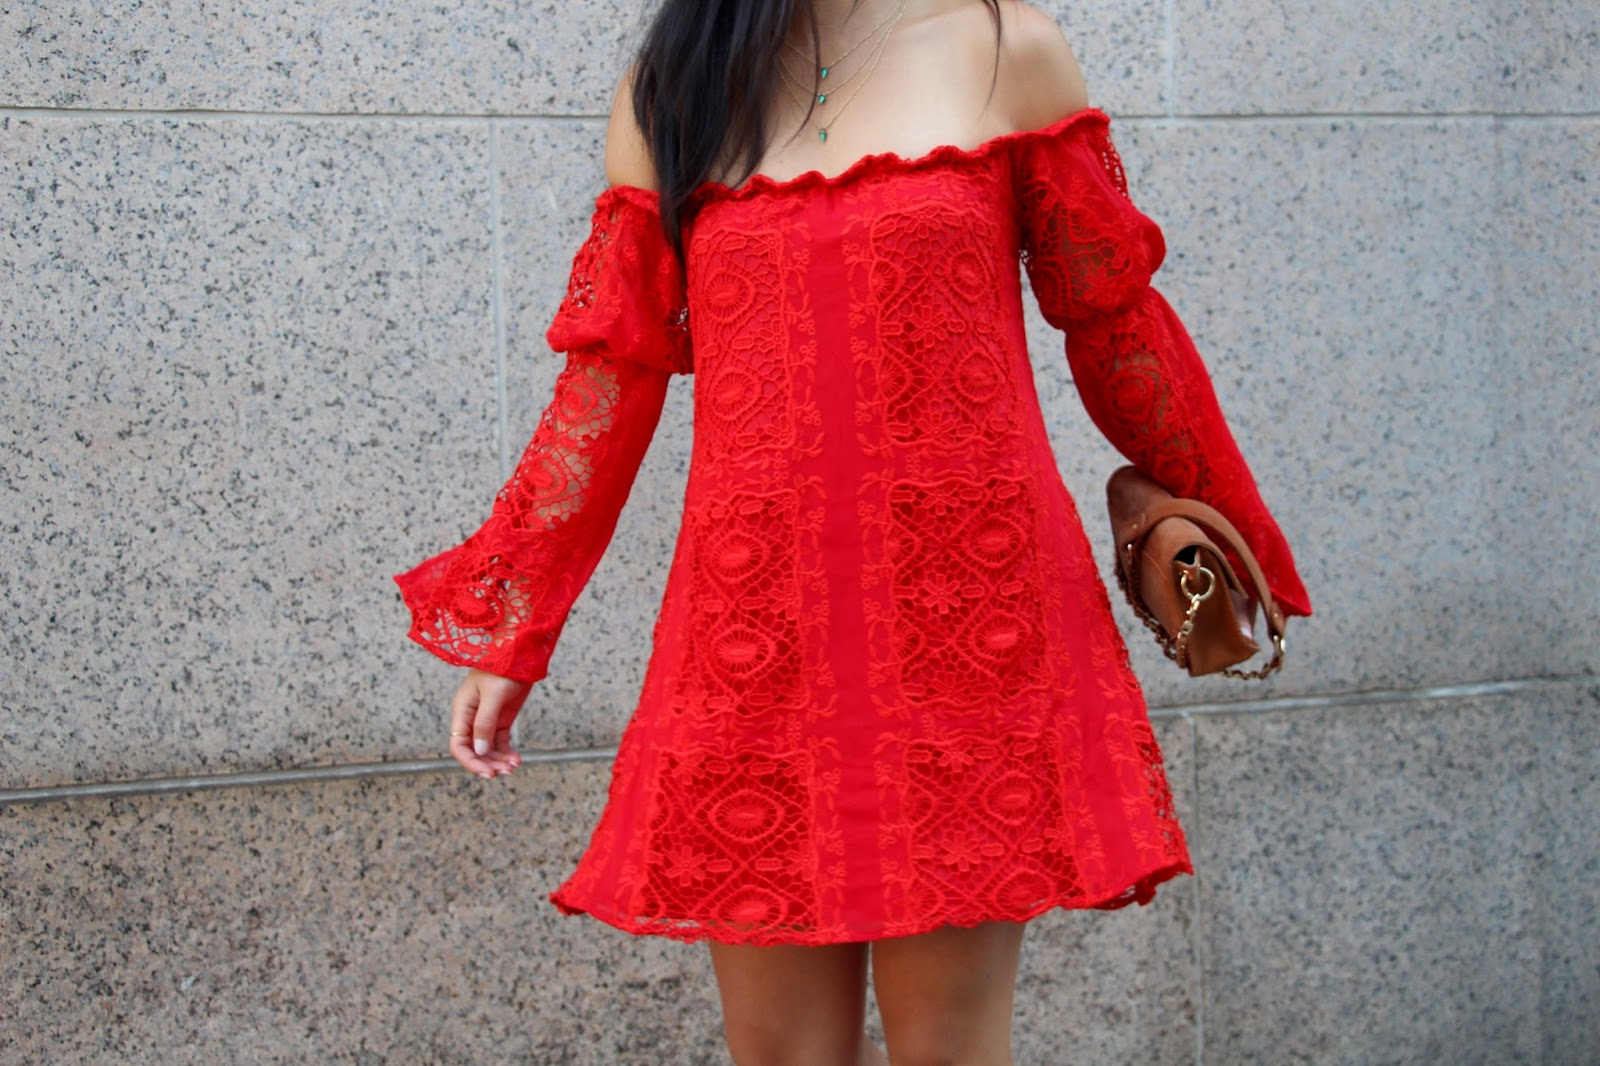 For Love and Lemons garden rose lace red dress off the shoulder